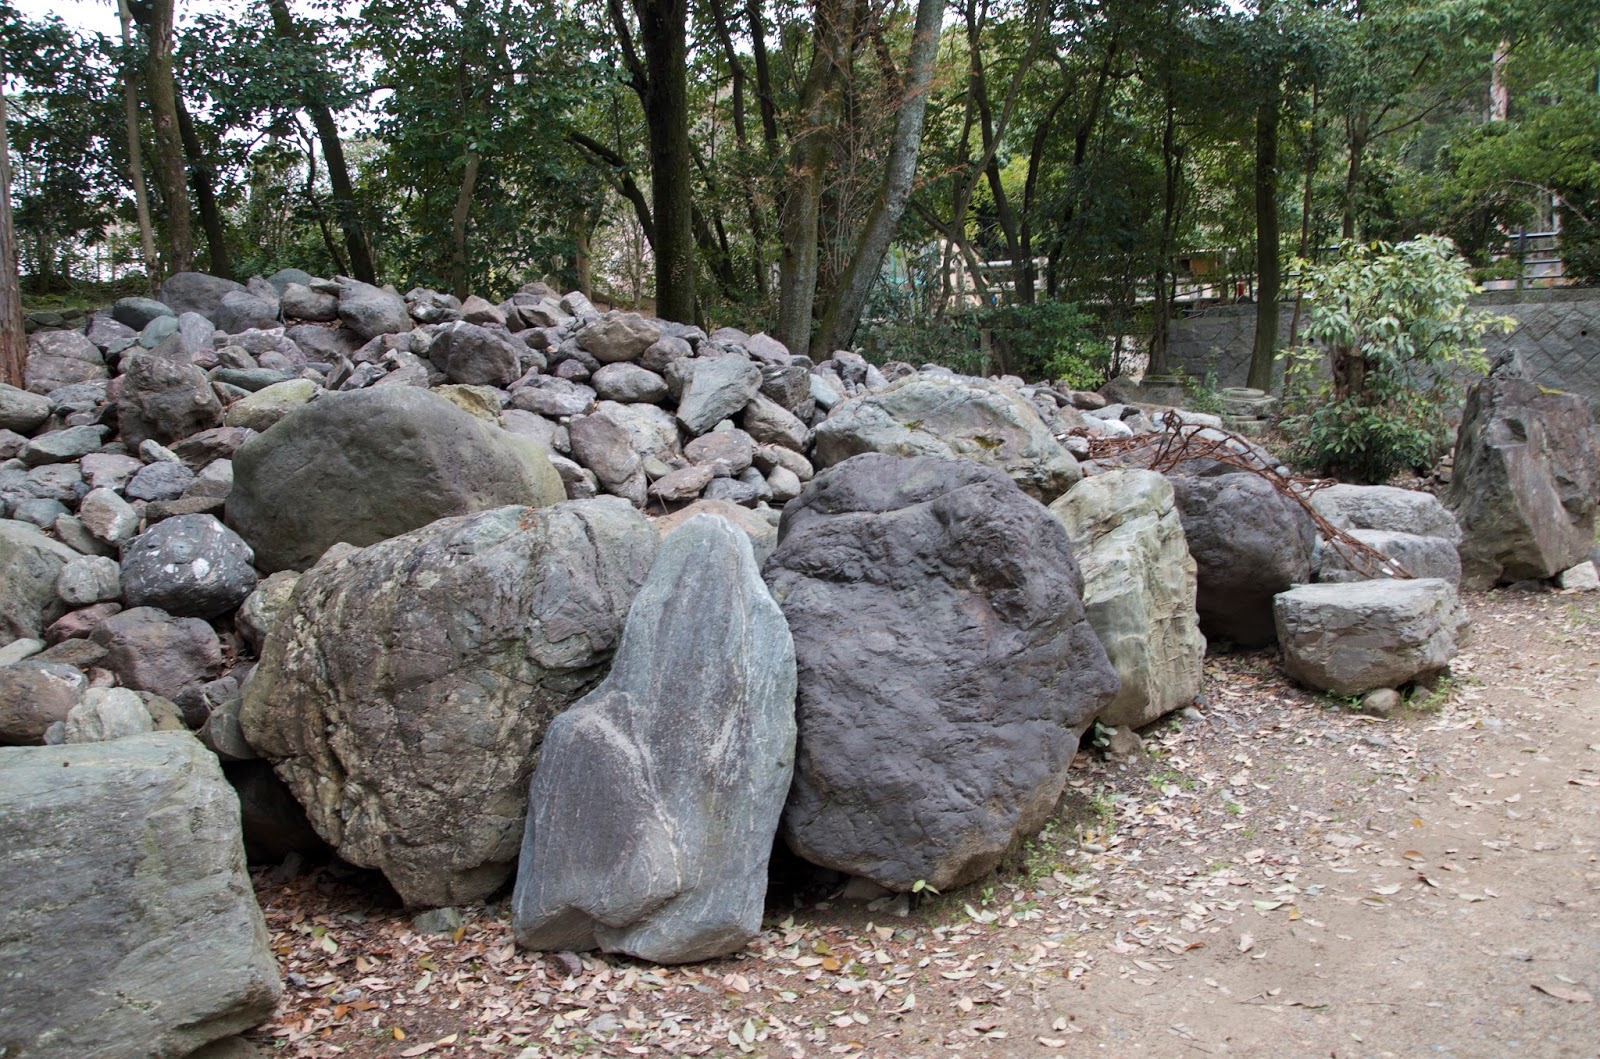 Japanese Garden Stones Robert ketchells blog stone setting in the japanese garden stone setting in the japanese garden workwithnaturefo